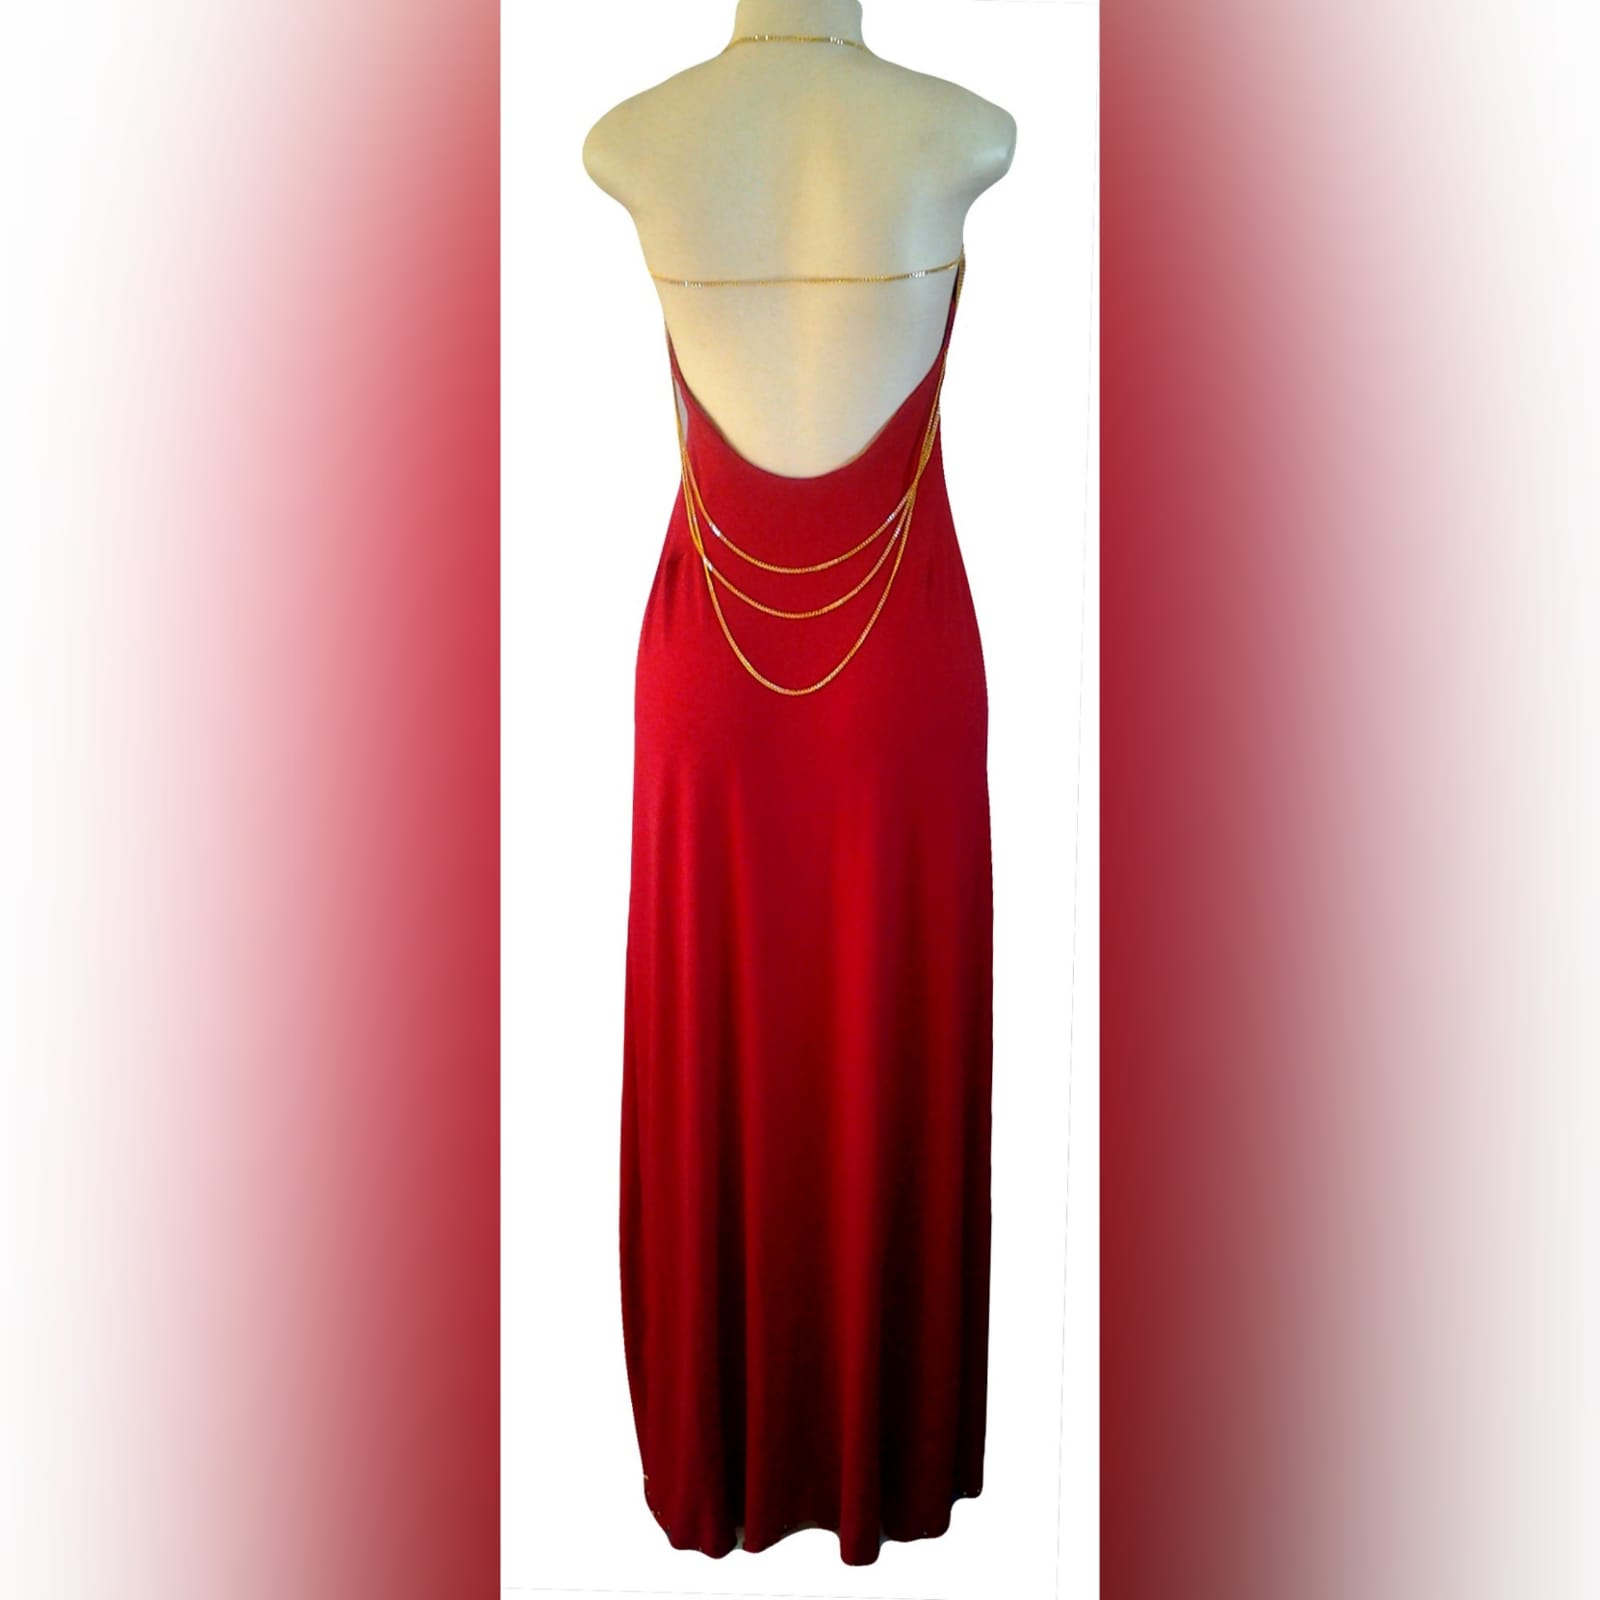 Red and gold long sexy gala dress 3 red and gold long sexy gala dress with an open back detailed with gold chain. With a slit detailed with gold beads.